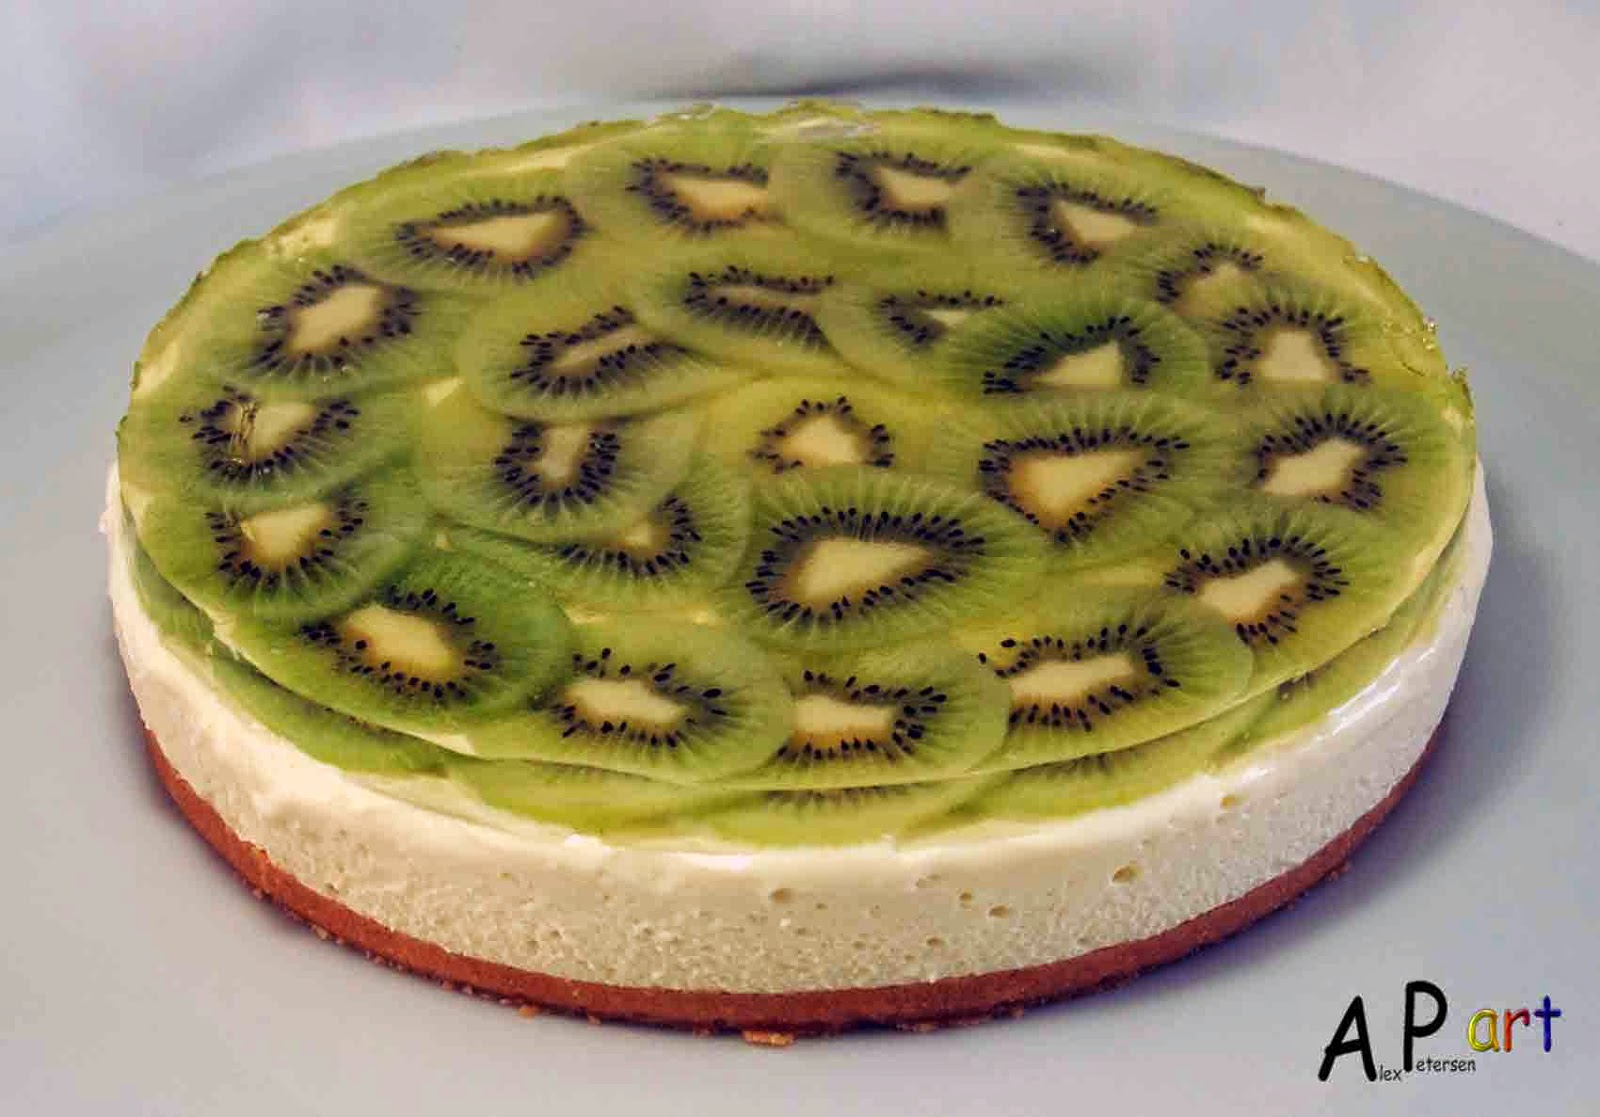 Alex the Contemporary Culinarian: Chilled Lime and Kiwi Cheesecake